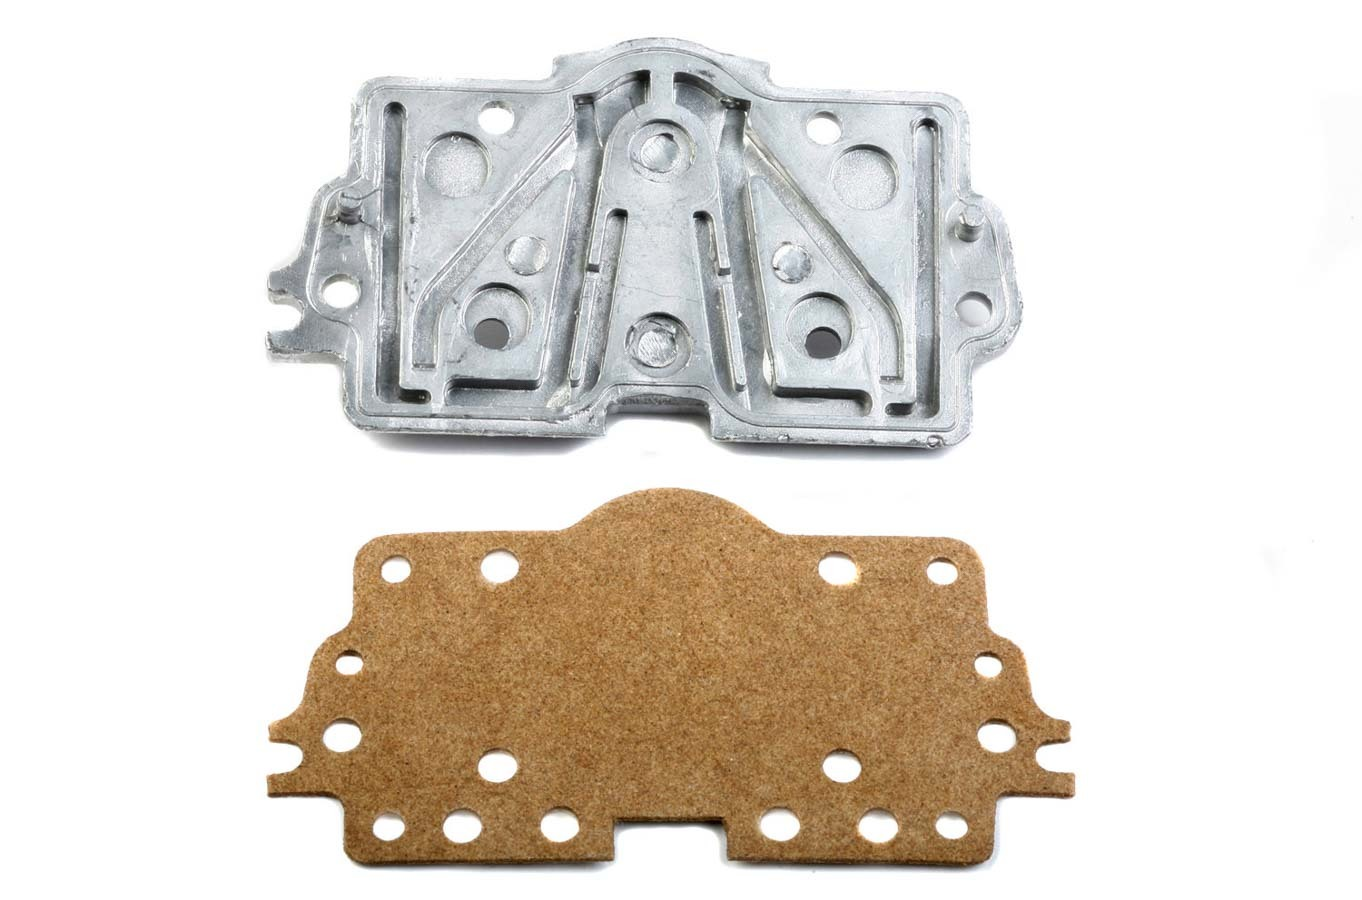 Holley 134-21 Metering Plate, 0.081 Main in Hole, 0.040 in Idle Hole, Gasket Included, Aluminum, Natural, Holley 4160 Carburetors, Kit